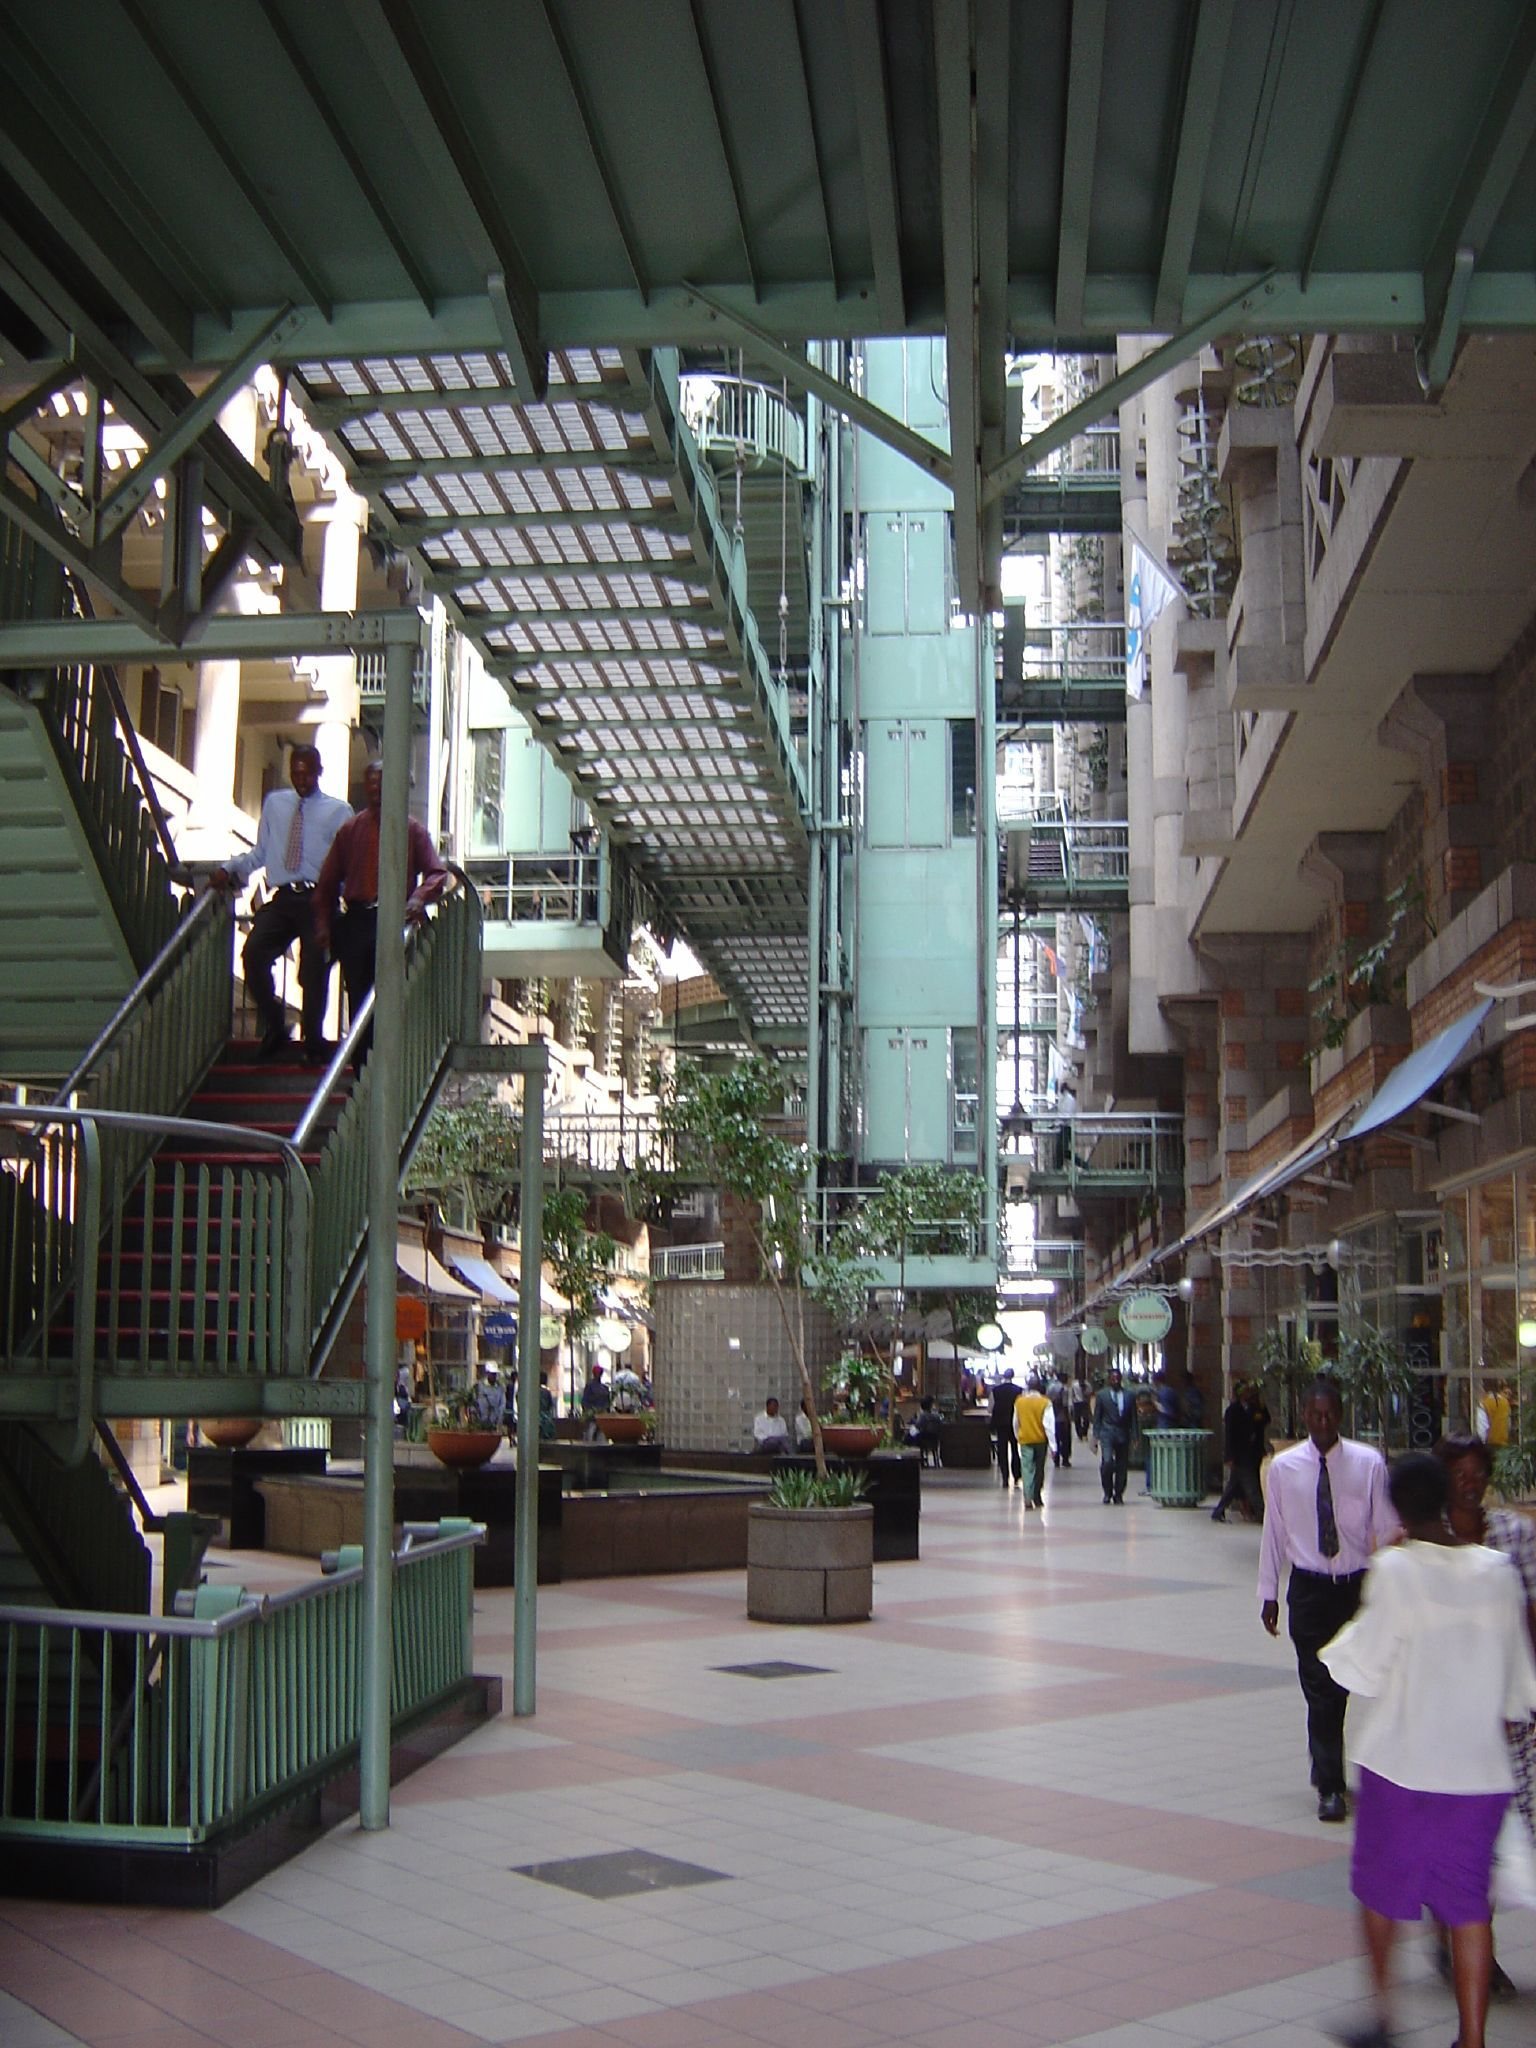 The Award Winning Eco Friendly Eastgate Mall Interior In Harare Zimbabwe Harare Mozambique Southern Africa